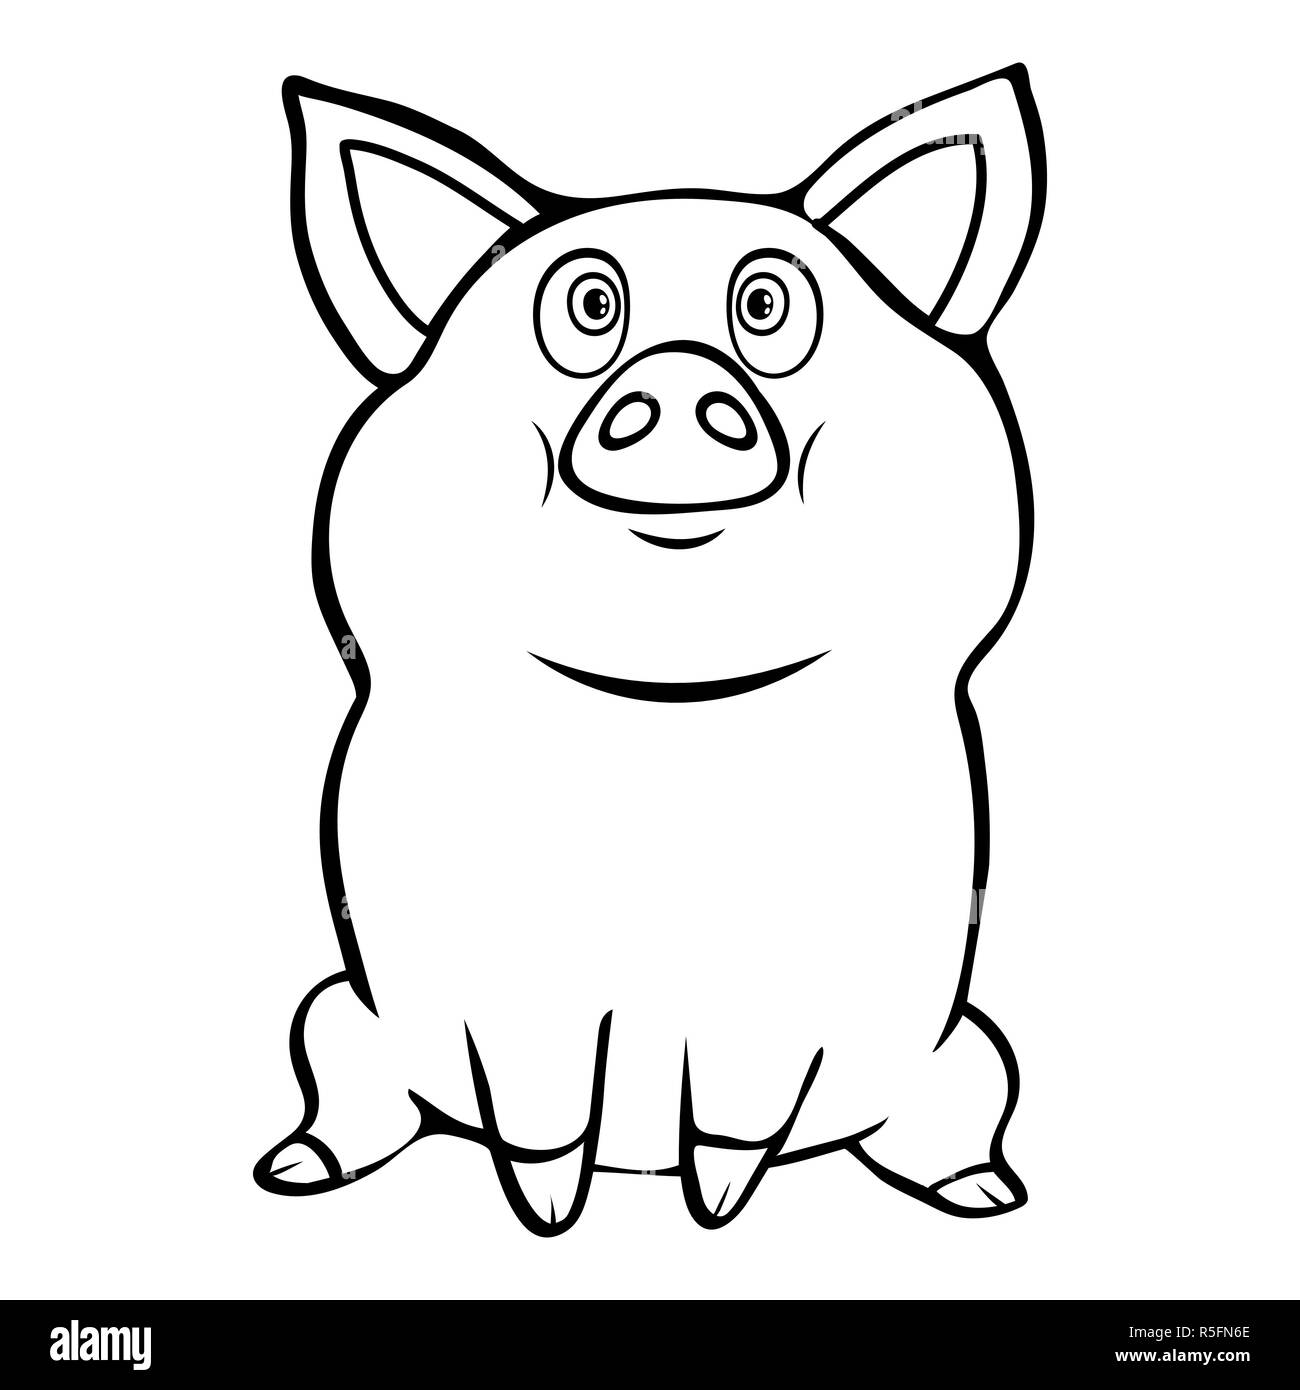 Cute funny pig linear hand drawing cartoon character